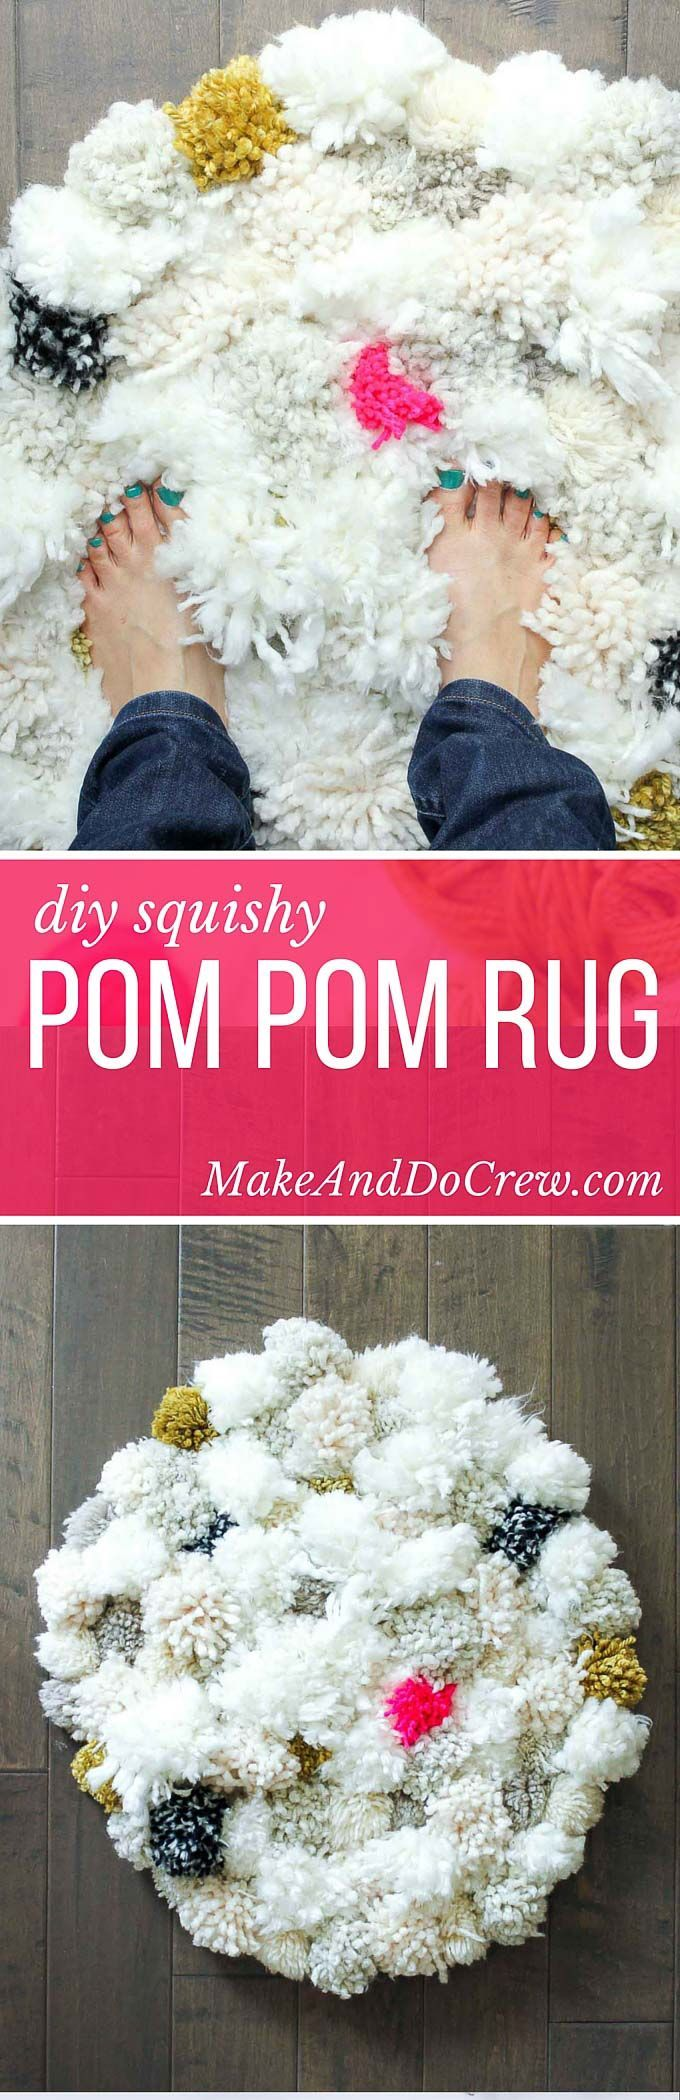 How to make a pom pom rug! This soft, scrumptiously squishy DIY pom pom rug takes very few skills to create and is a great way to use up a bunch of scrap yarn! Perfect for a bedroom, bathroom or baby nursery.